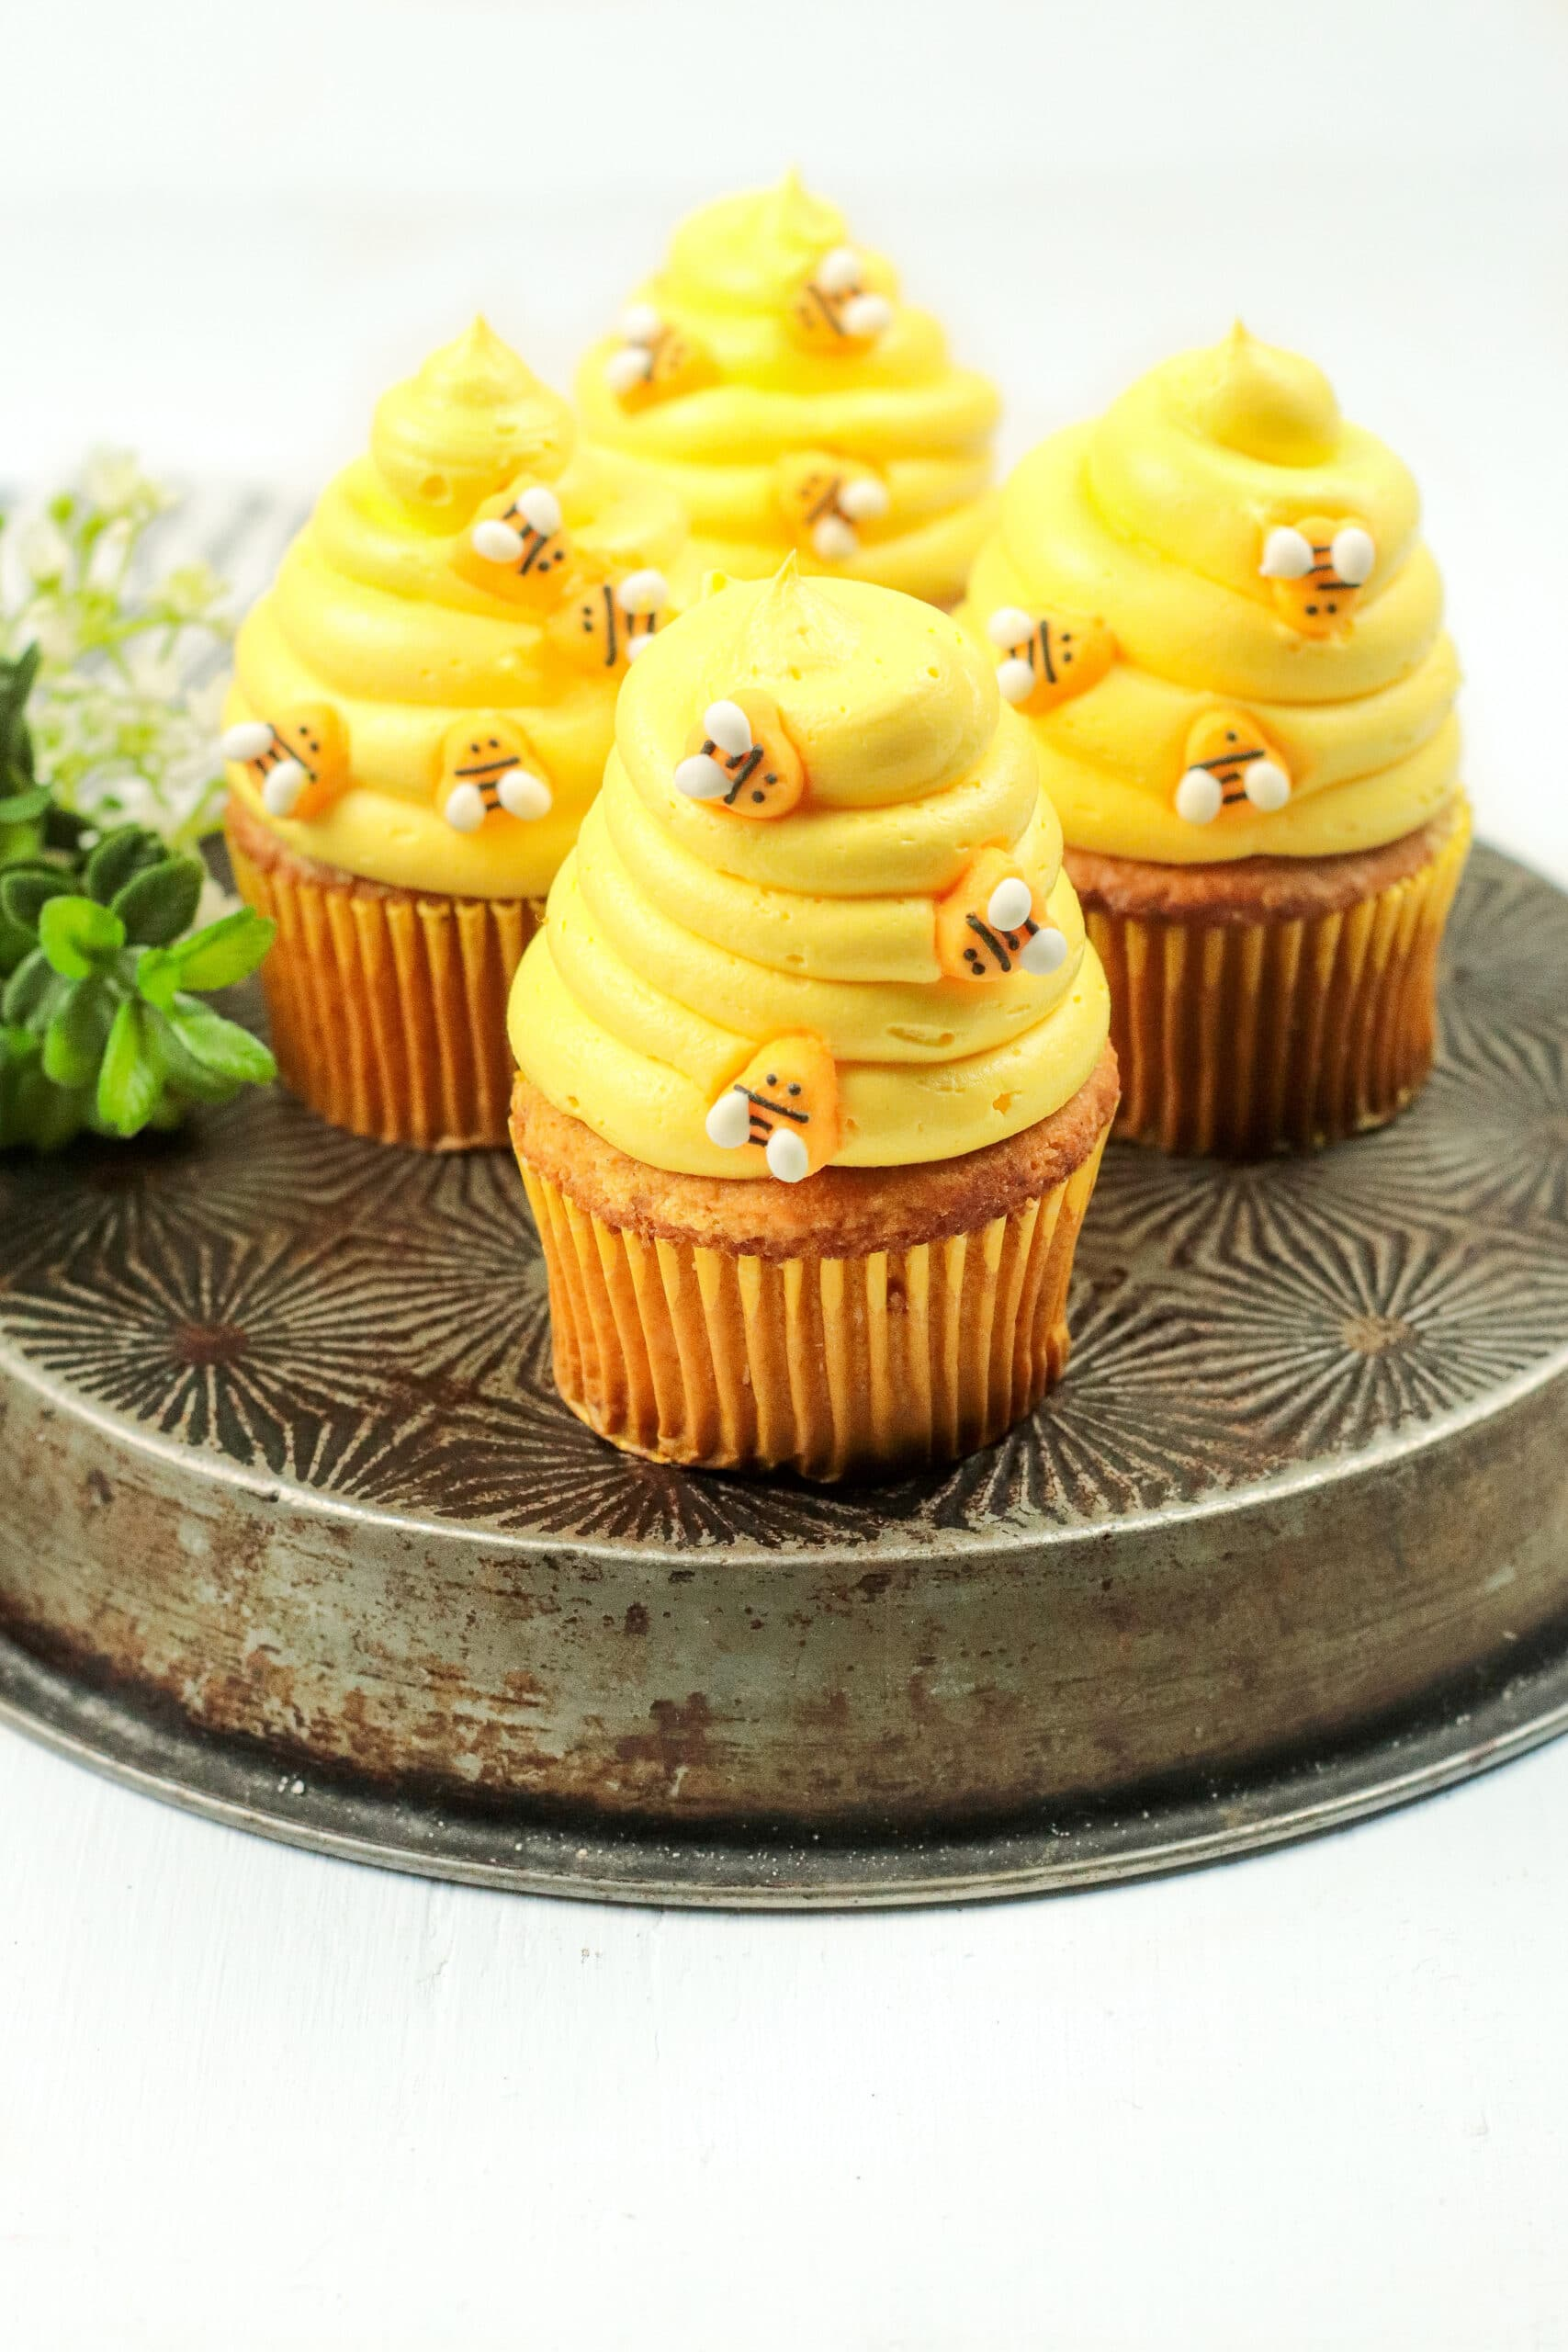 Bumblebee Honey Cupcakes with Honey Cream Cheese Frosting Pan. These Bumblebee Honey Cupcakes with Honey Cream Cheese Frosting are insanely delicious. Made with a touch of honey and cinnamon, these bumblebee inspired cupcakes are almost too cute to eat.